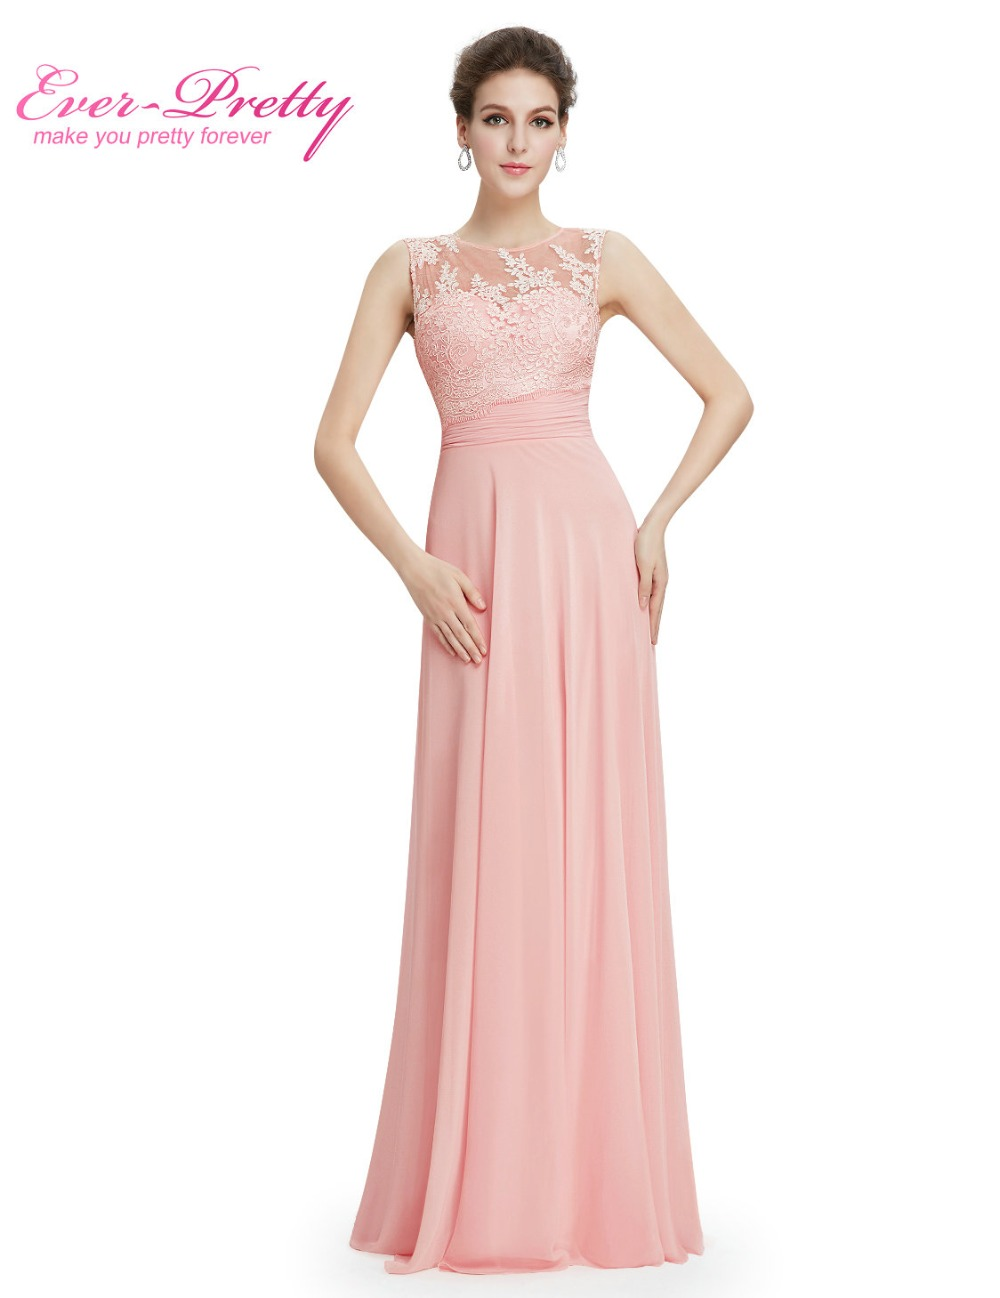 Elegant light pink chiffon long bridesmaid dresses ep08760 2017 elegant light pink chiffon long bridesmaid dresses ep08760 2017 vestido formal dress floor length sleeveless bridesmaid dresses in bridesmaid dresses from ombrellifo Choice Image